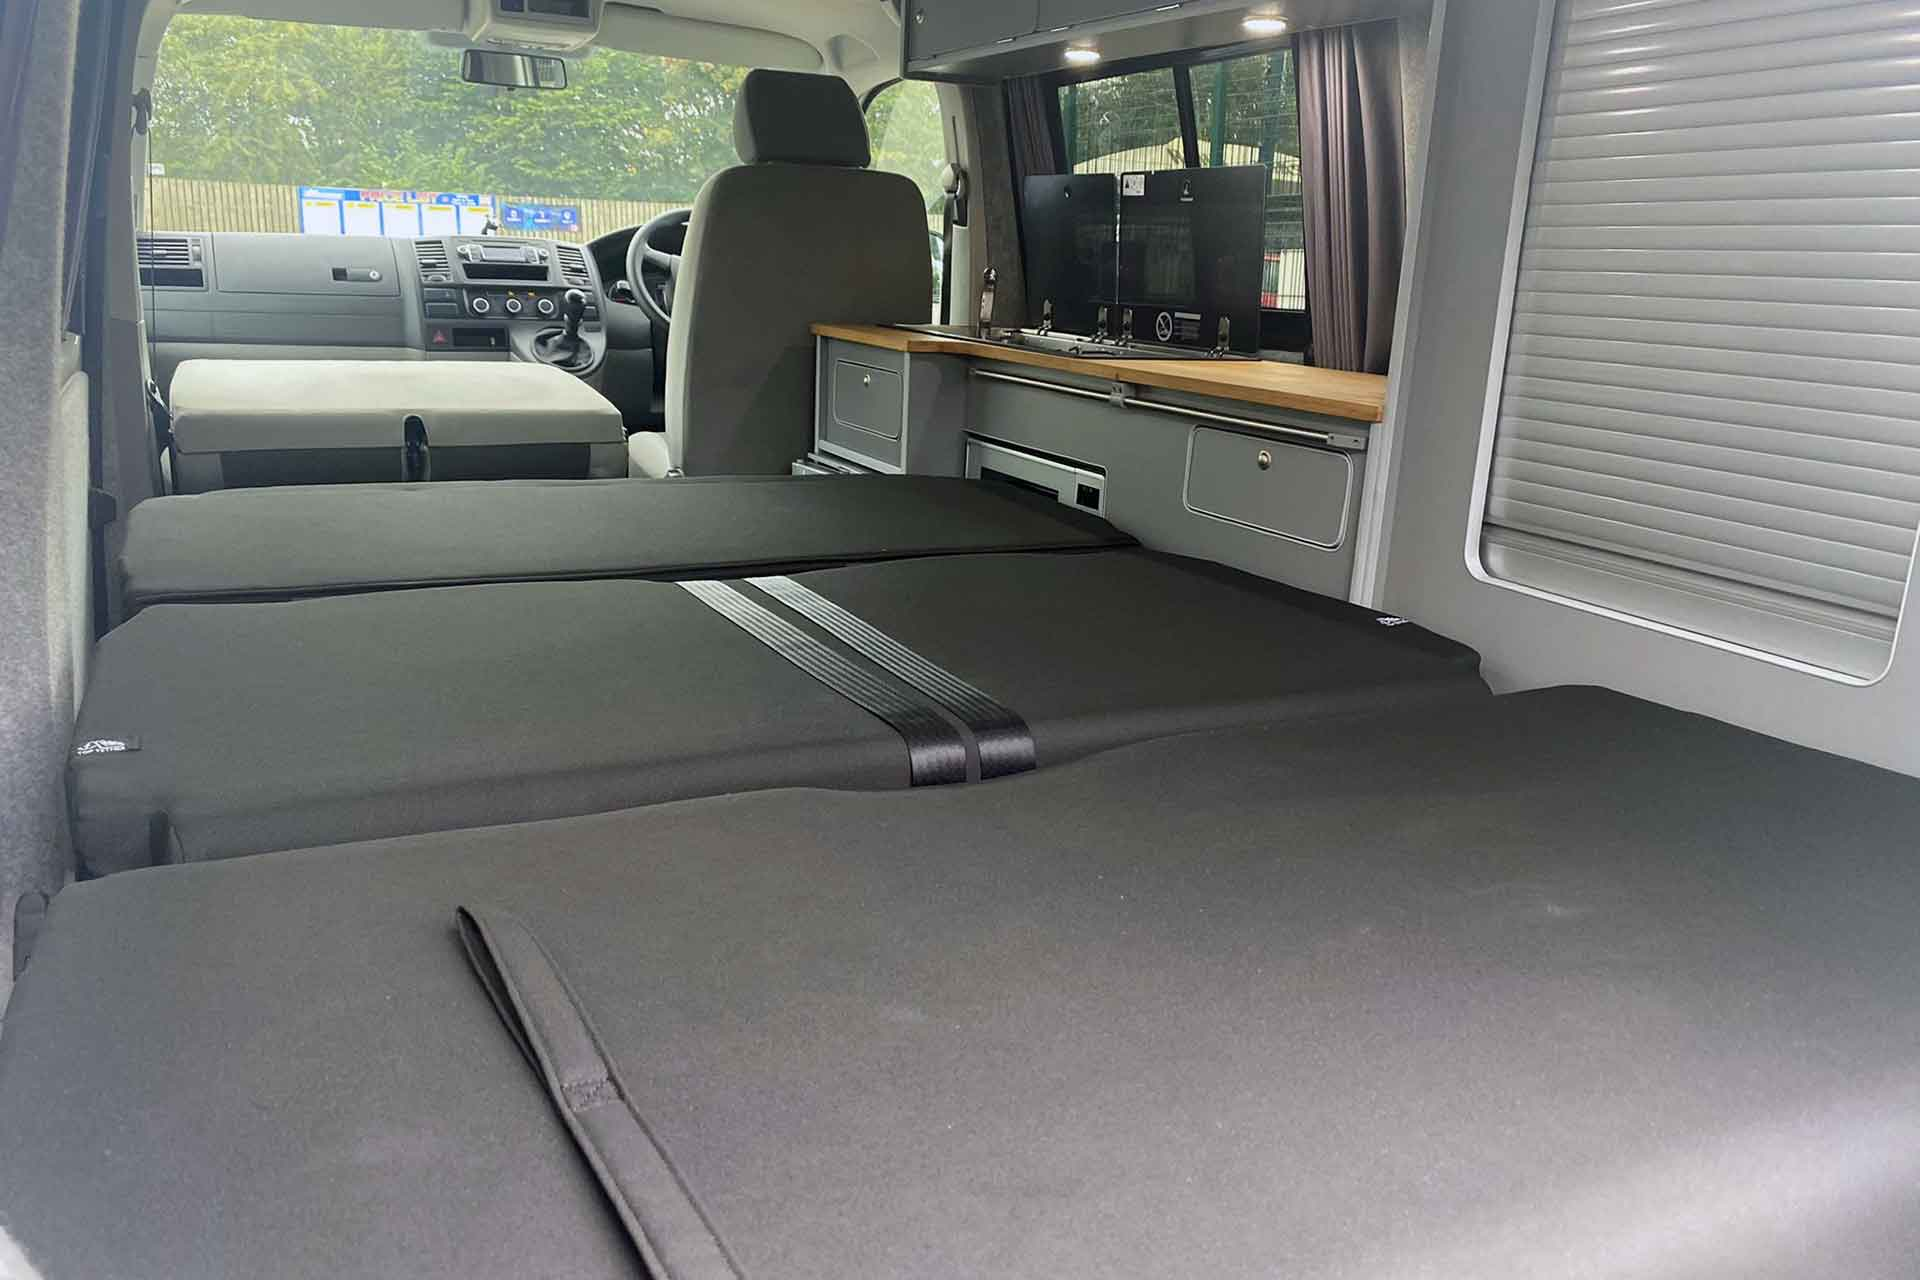 VW Campervan With RIB Bed